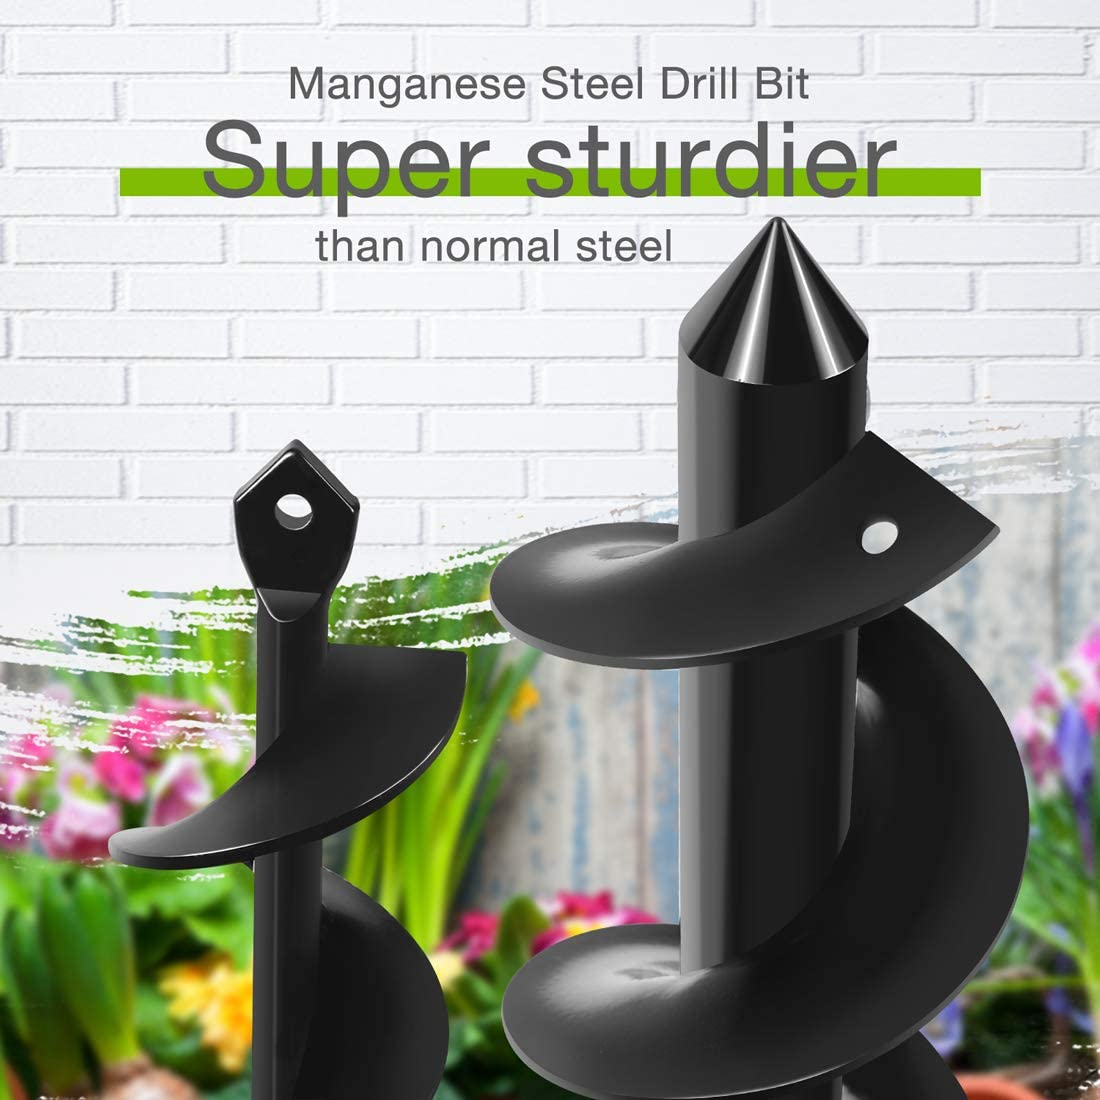 Bedding Plants and Digging Weeds Roots WORKPRO 2-Piece Auger Drill Bit Iris 1.6x9 and 3x12 Garden Auger Spiral Drill Bit Rapid Planter for 3//8 Hex Drive Drill Hole Digger for Tulips